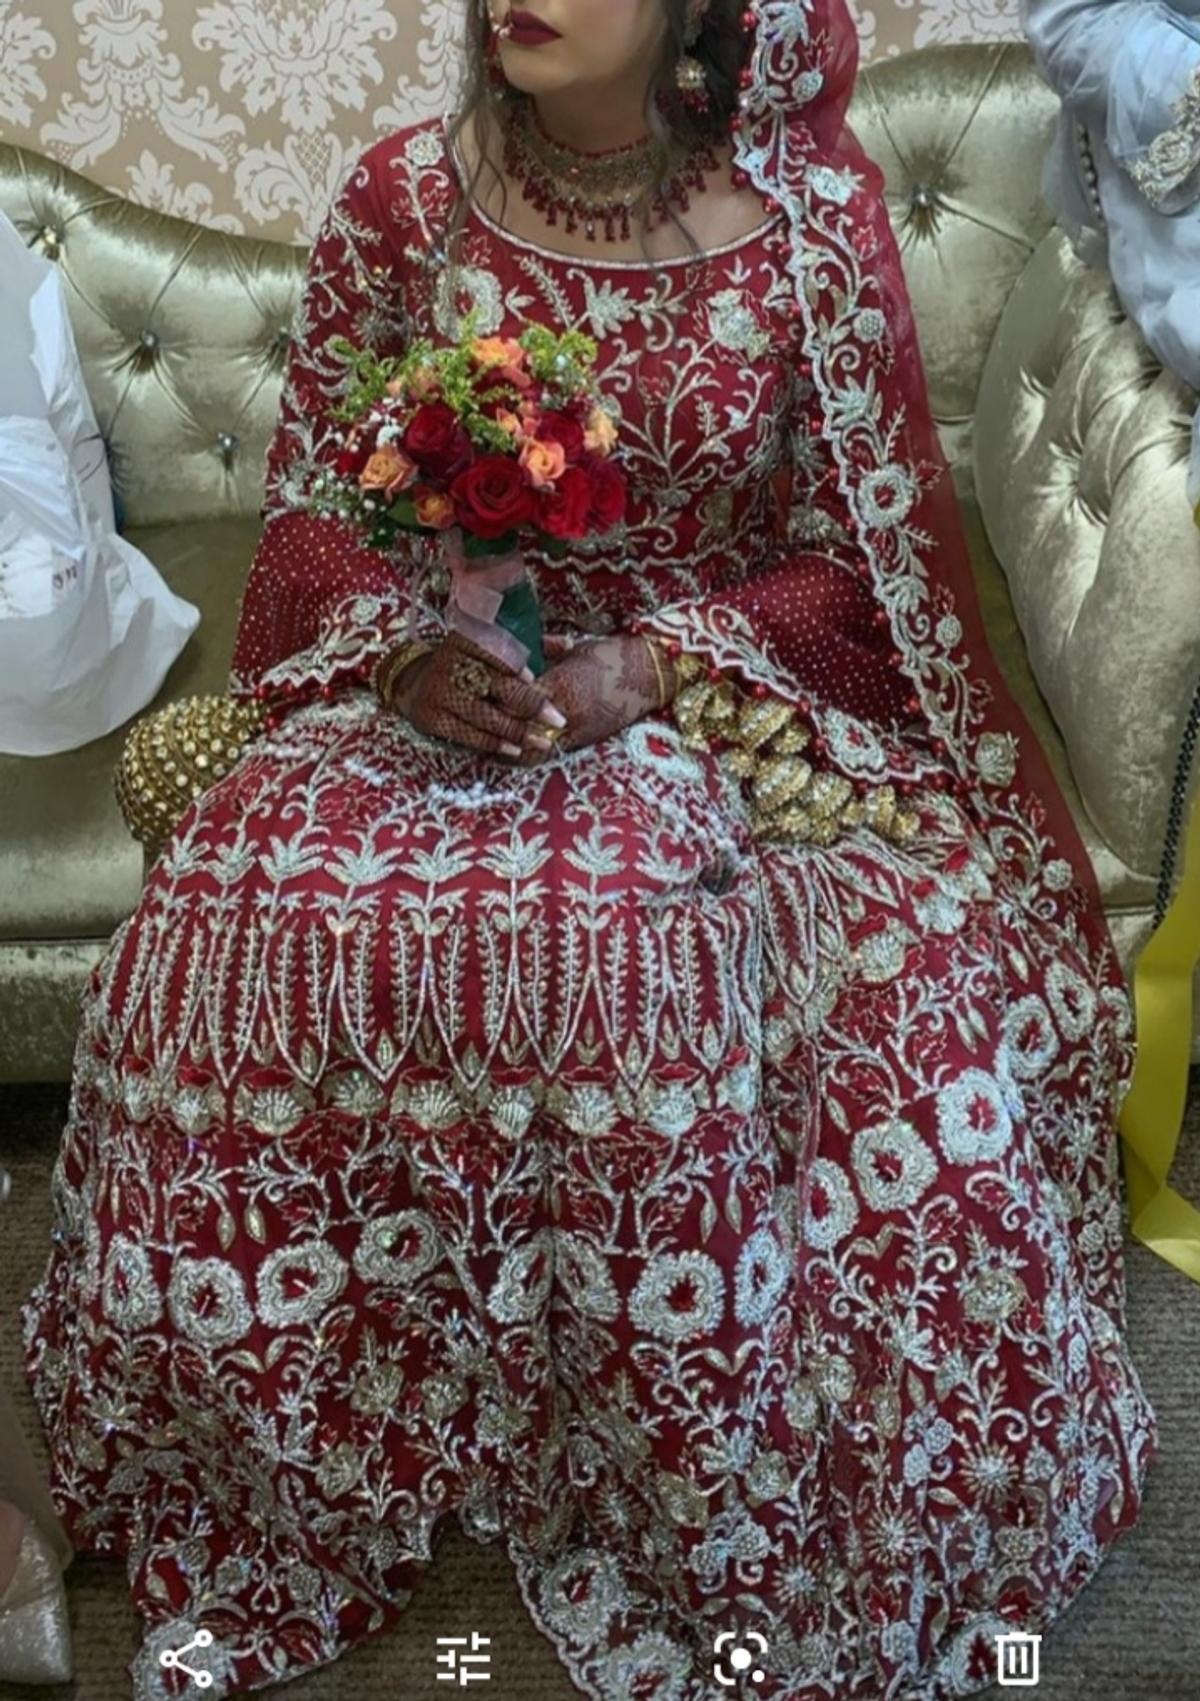 Asian Wedding Dress In Ol12 Rochdale For 1 400 00 For Sale Shpock,Stylish Beautiful Dresses To Wear To A Wedding As A Guest